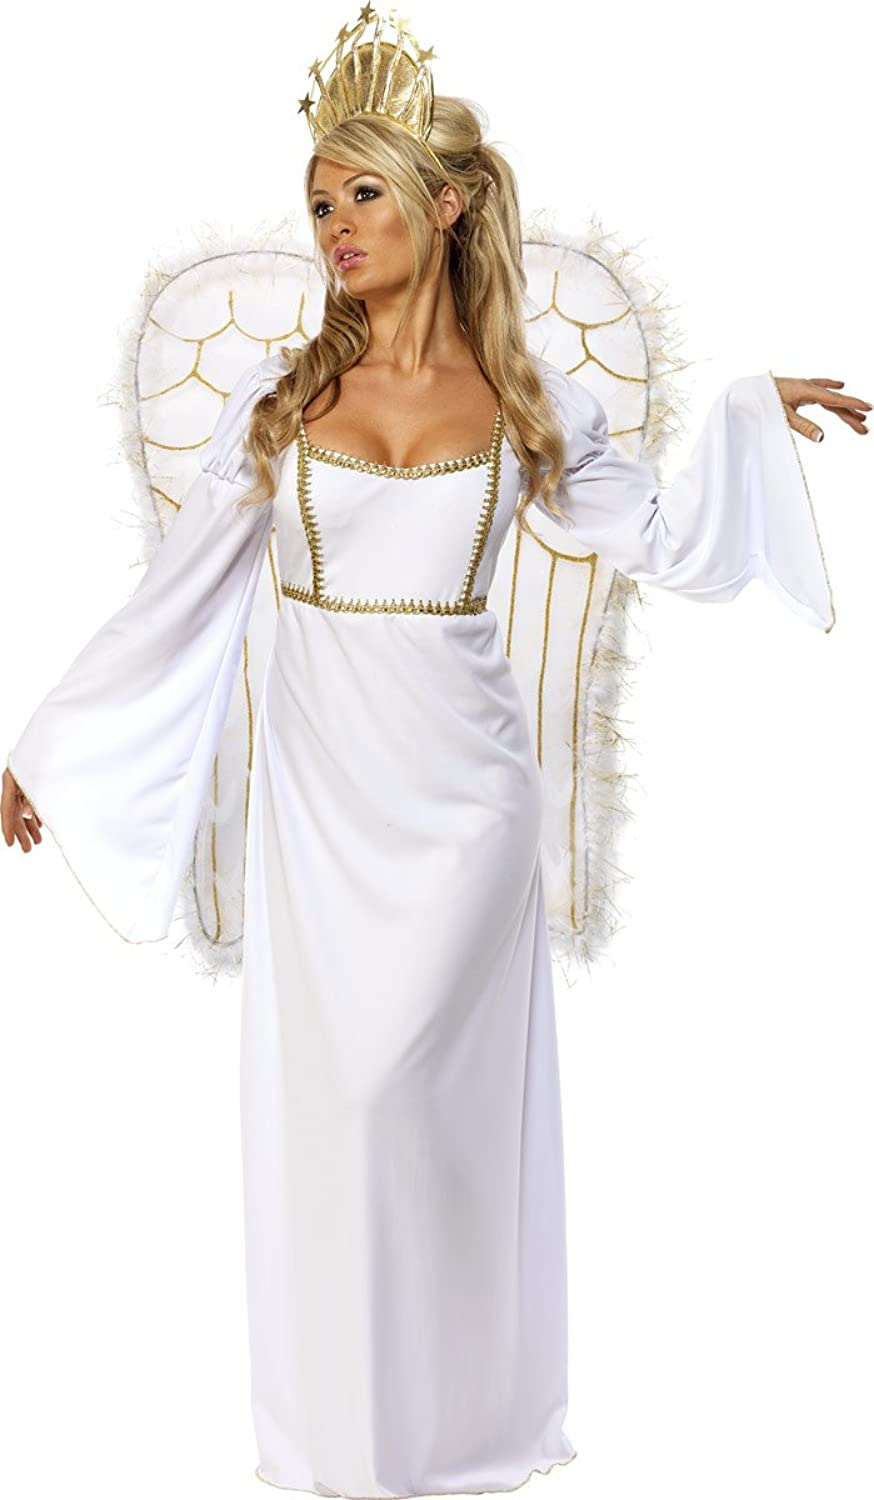 Ladies Full Long Length Christmas Angel Fairy with Crown & Wings Fancy Dress Outfit Costume UK 1218 White